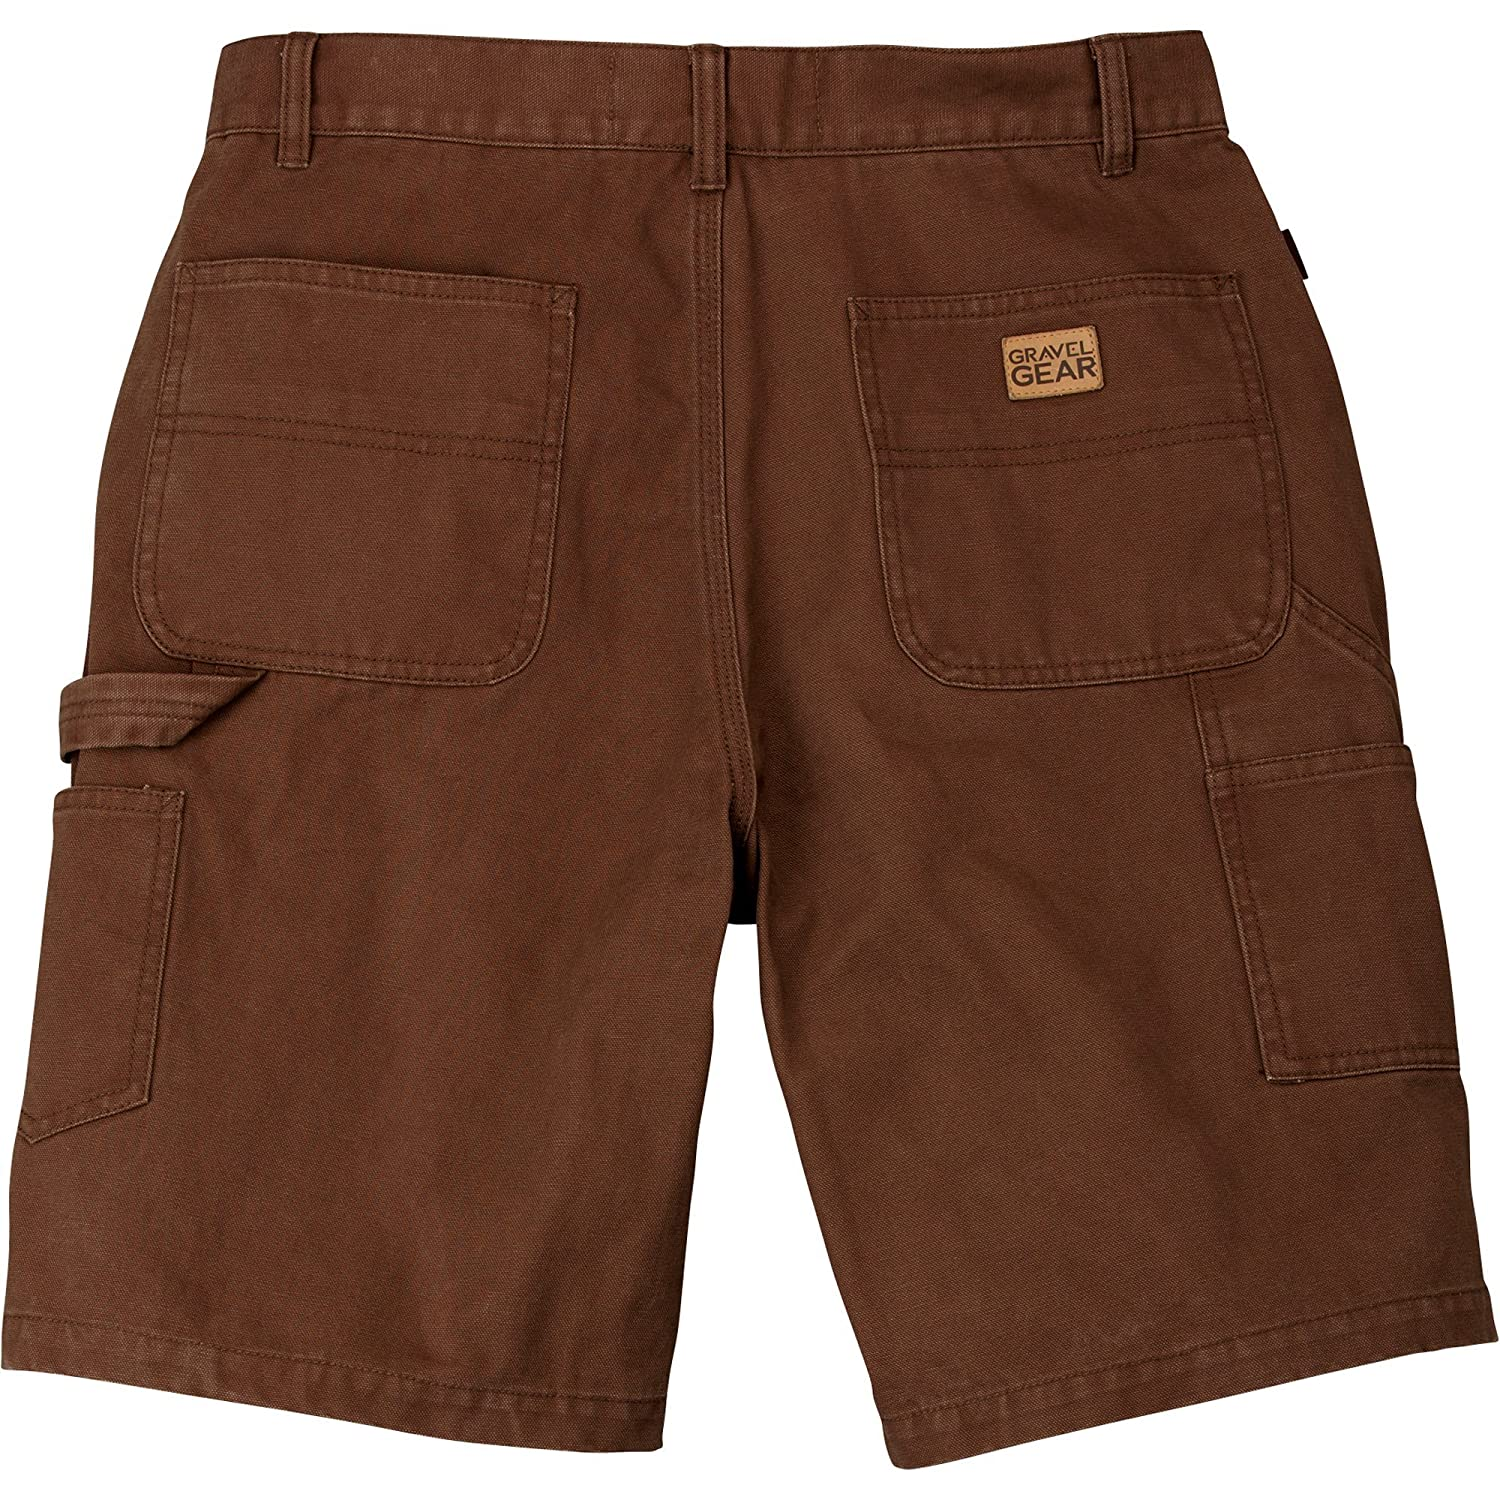 Gravel Gear SHORTS メンズ B016L33U0G 32W|Bark Brown Bark Brown 32W